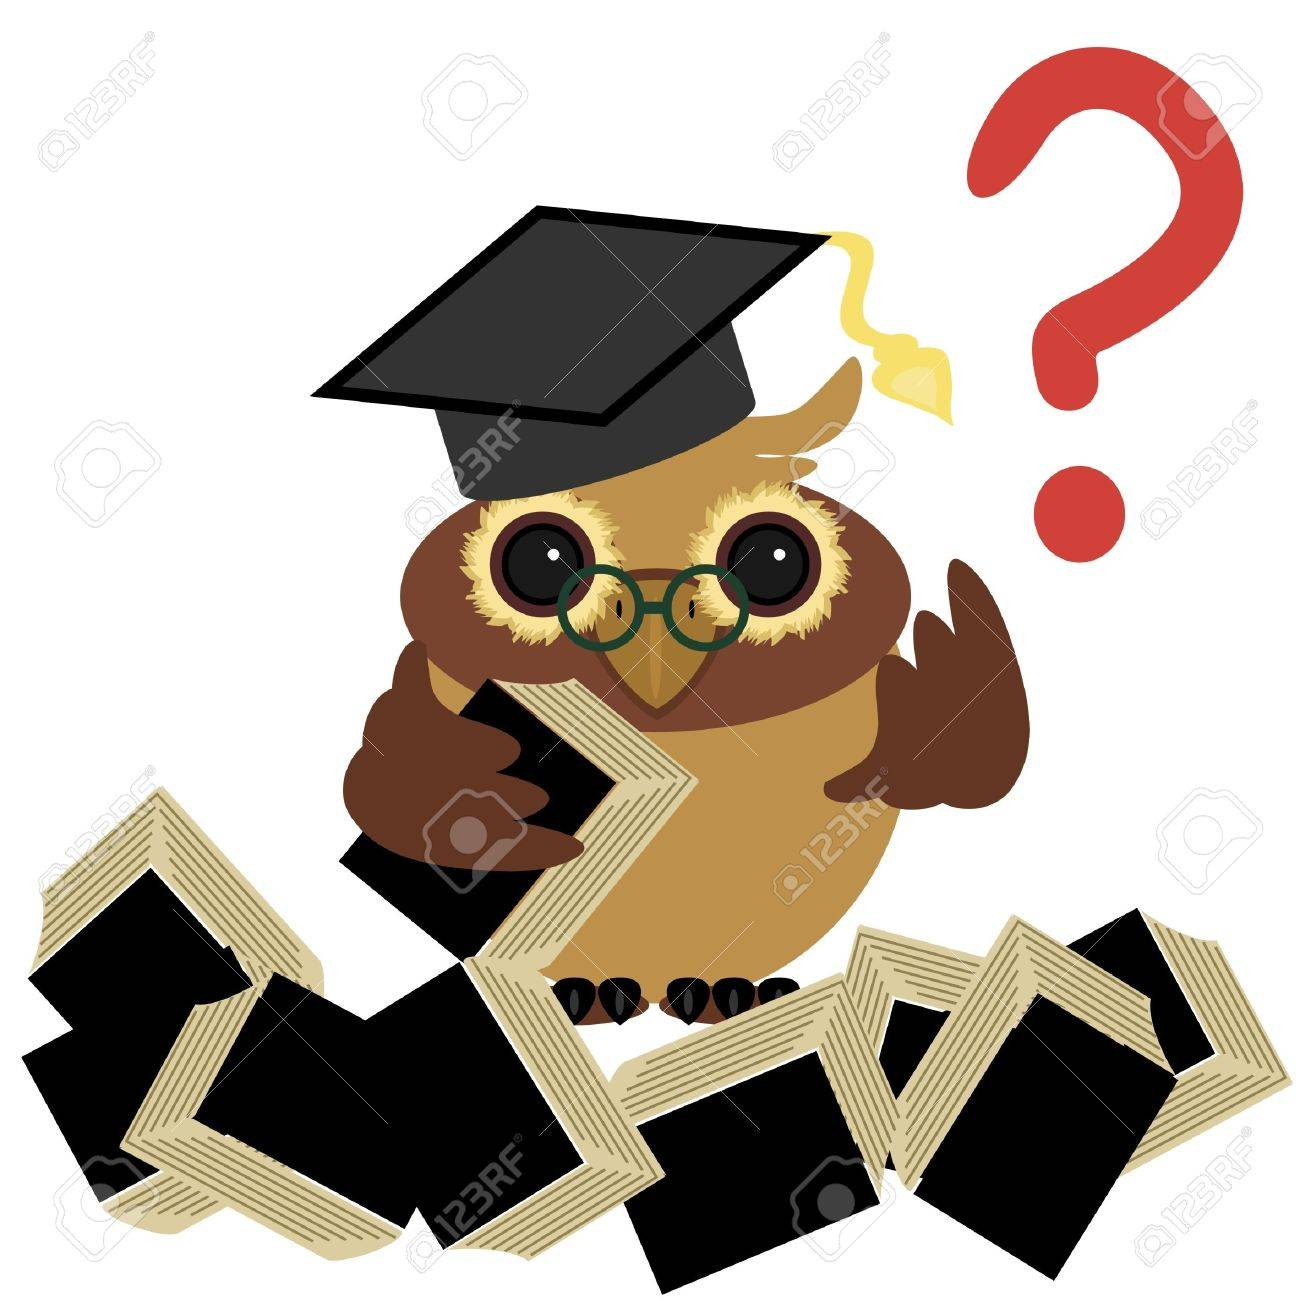 Clever Owl With Books Royalty Free Cliparts, Vectors, And Stock ...